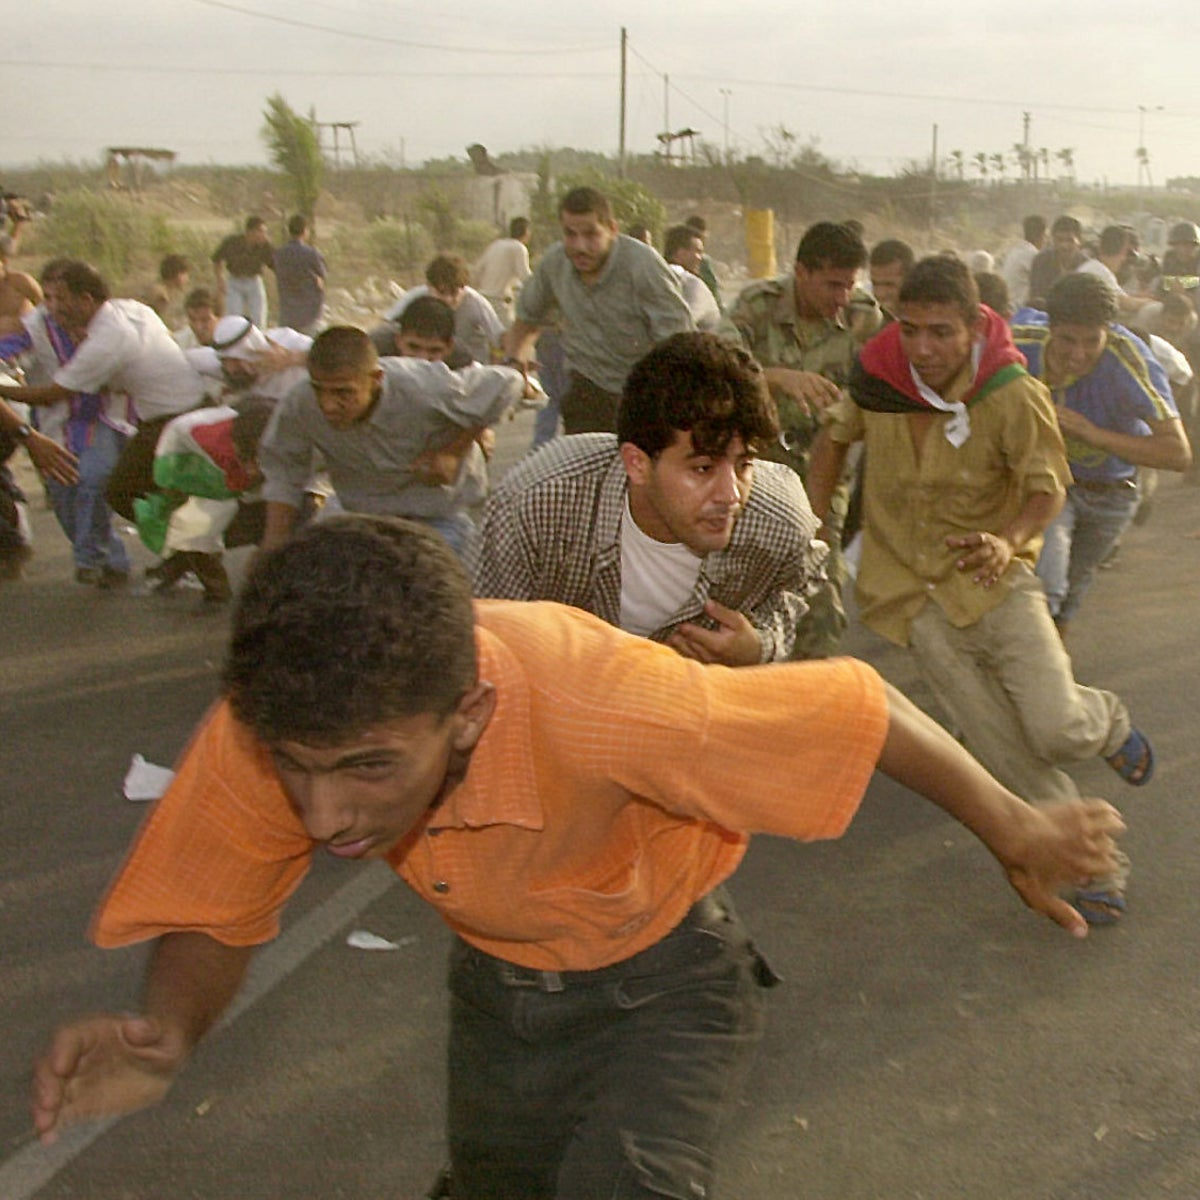 Palestinian demonstrators run for cover from heavy shooting during clashes with Israeli forces at the Netzarim Junction in the southern Gaza Strip, October 6, 2000.